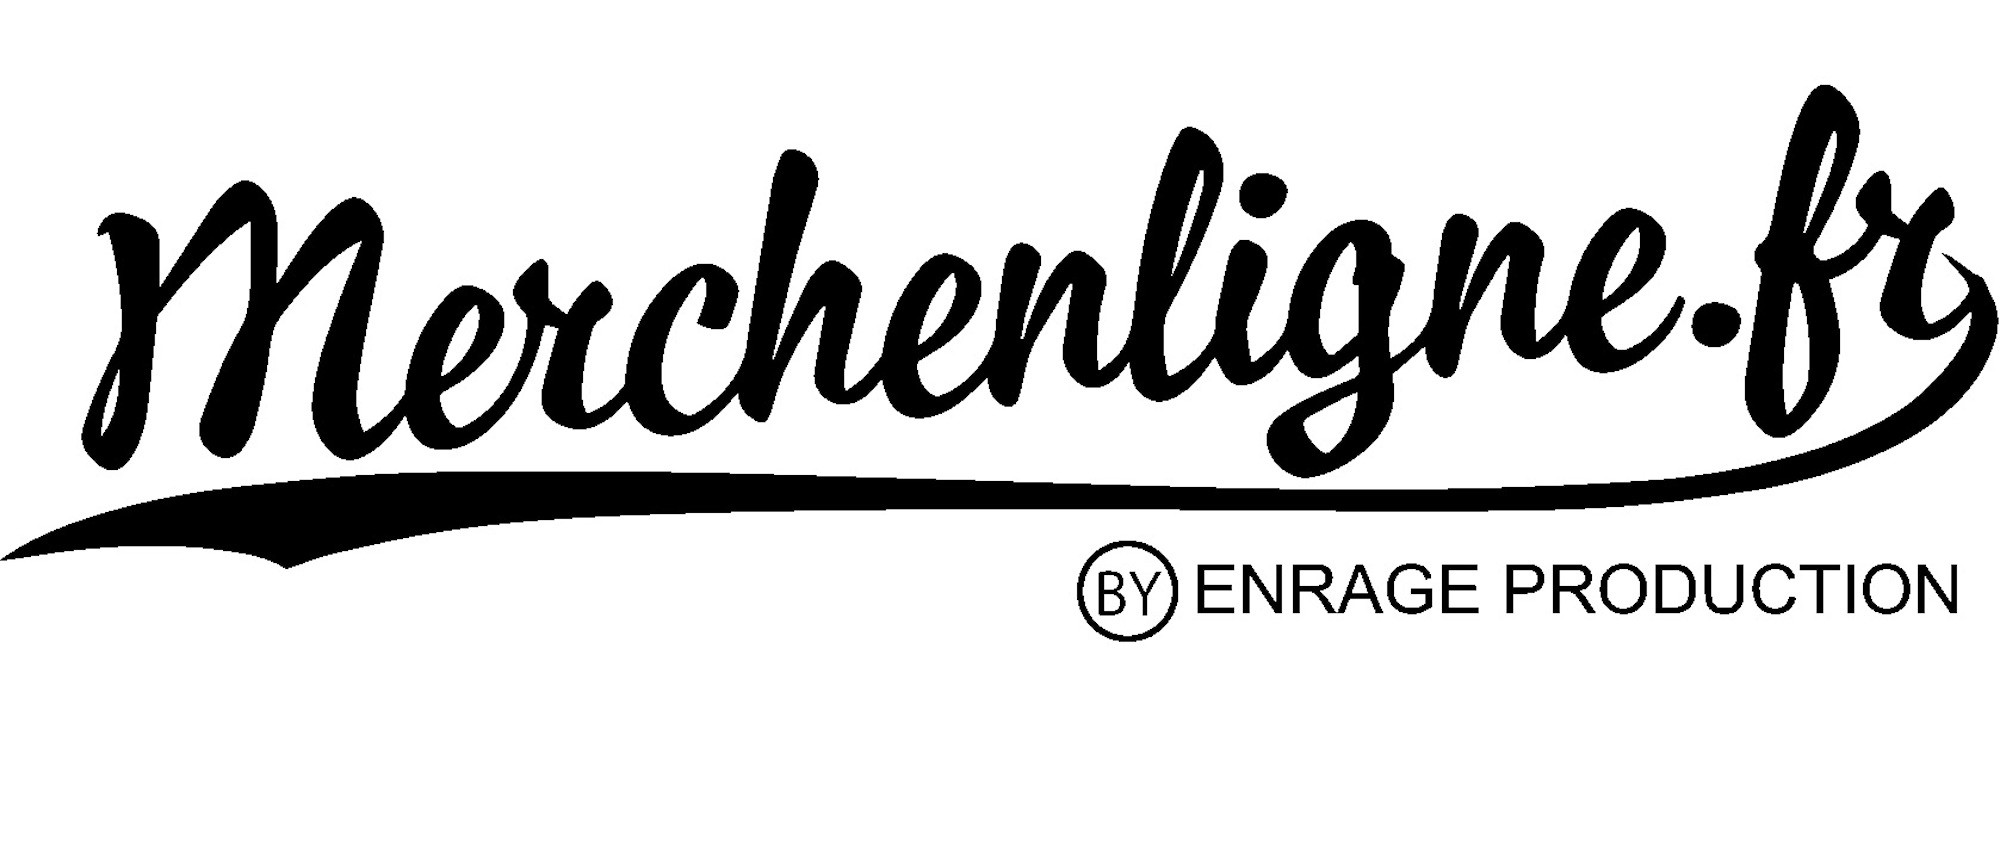 ENRAGE CORPORATION  - MERCHENLIGNE.FR